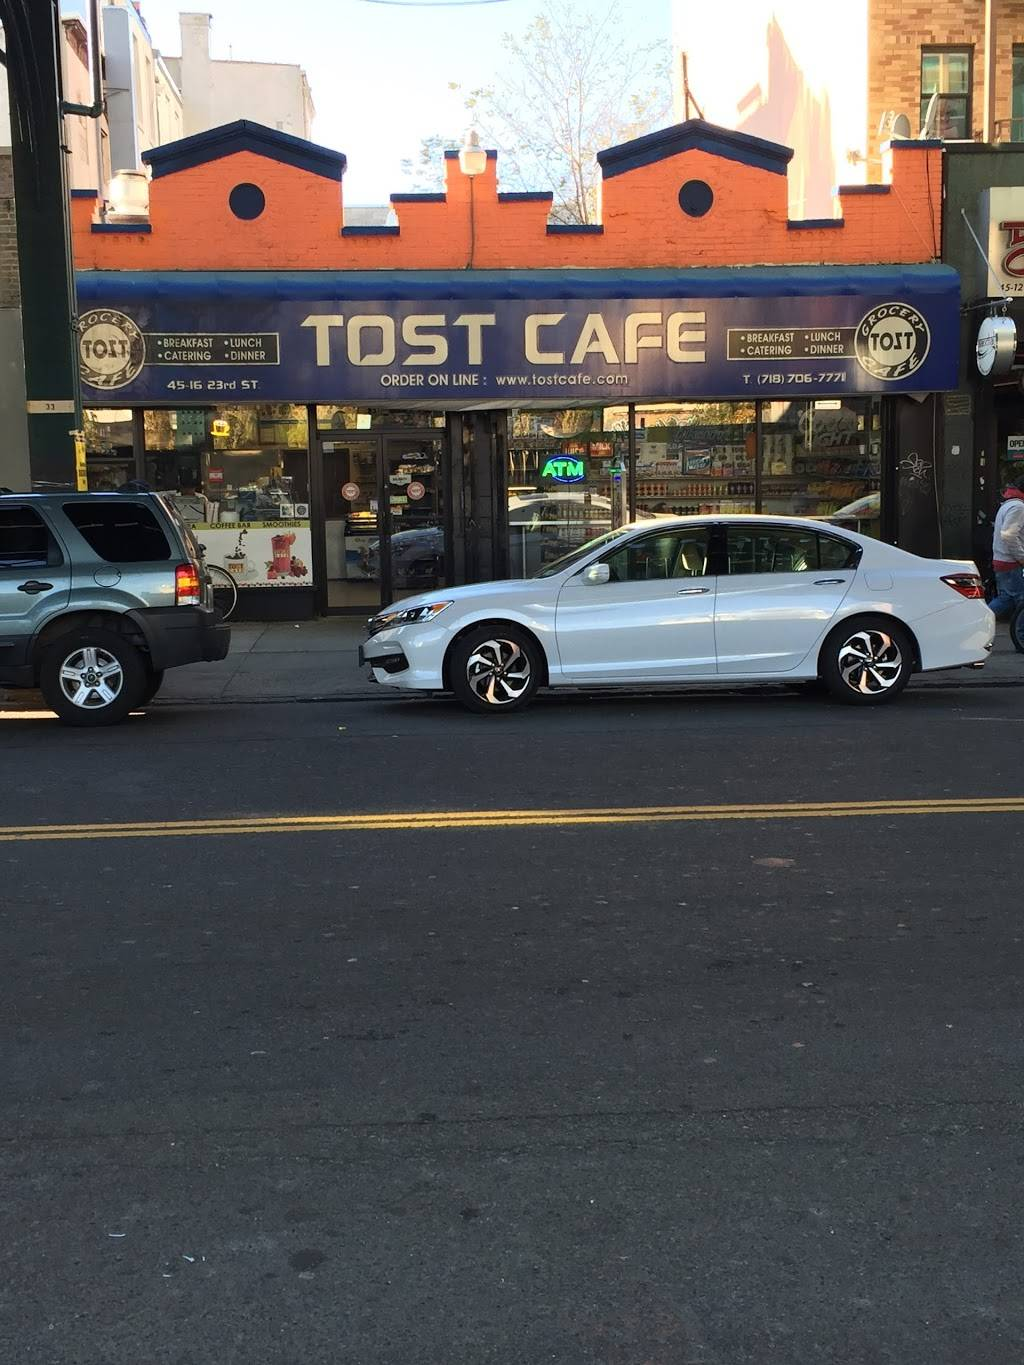 Tozt Cafe | meal takeaway | 4516 23rd St, Long Island City, NY 11101, USA | 7187067771 OR +1 718-706-7771